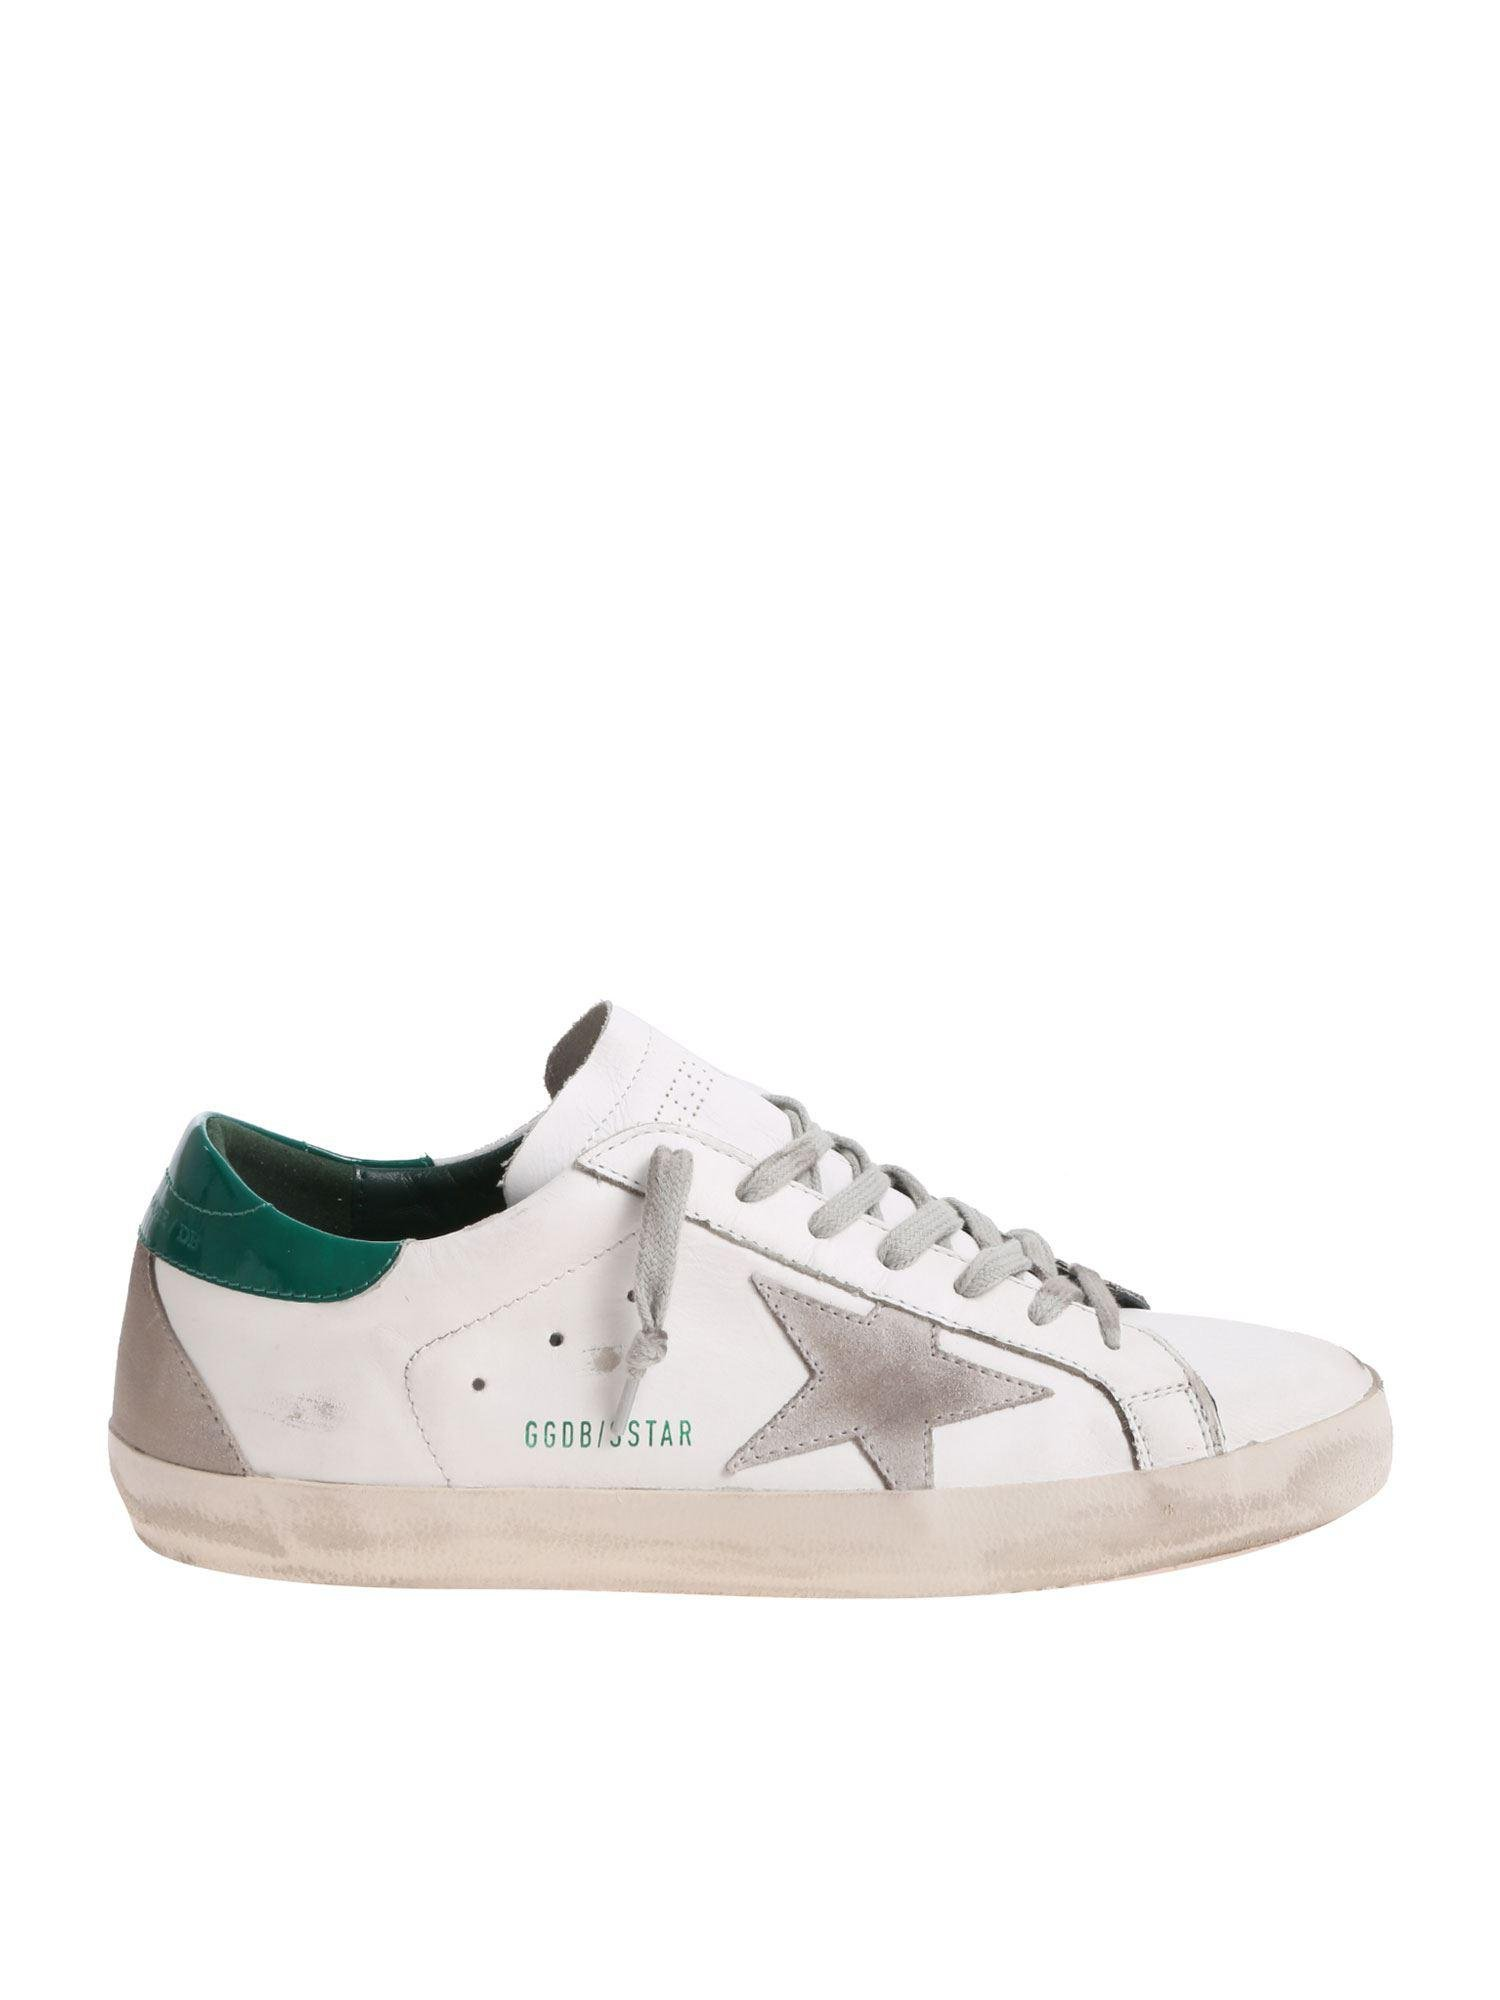 aec194870a4c Golden Goose Deluxe Brand - Superstar White Sneakers With Green Insert for  Men - Lyst. View fullscreen